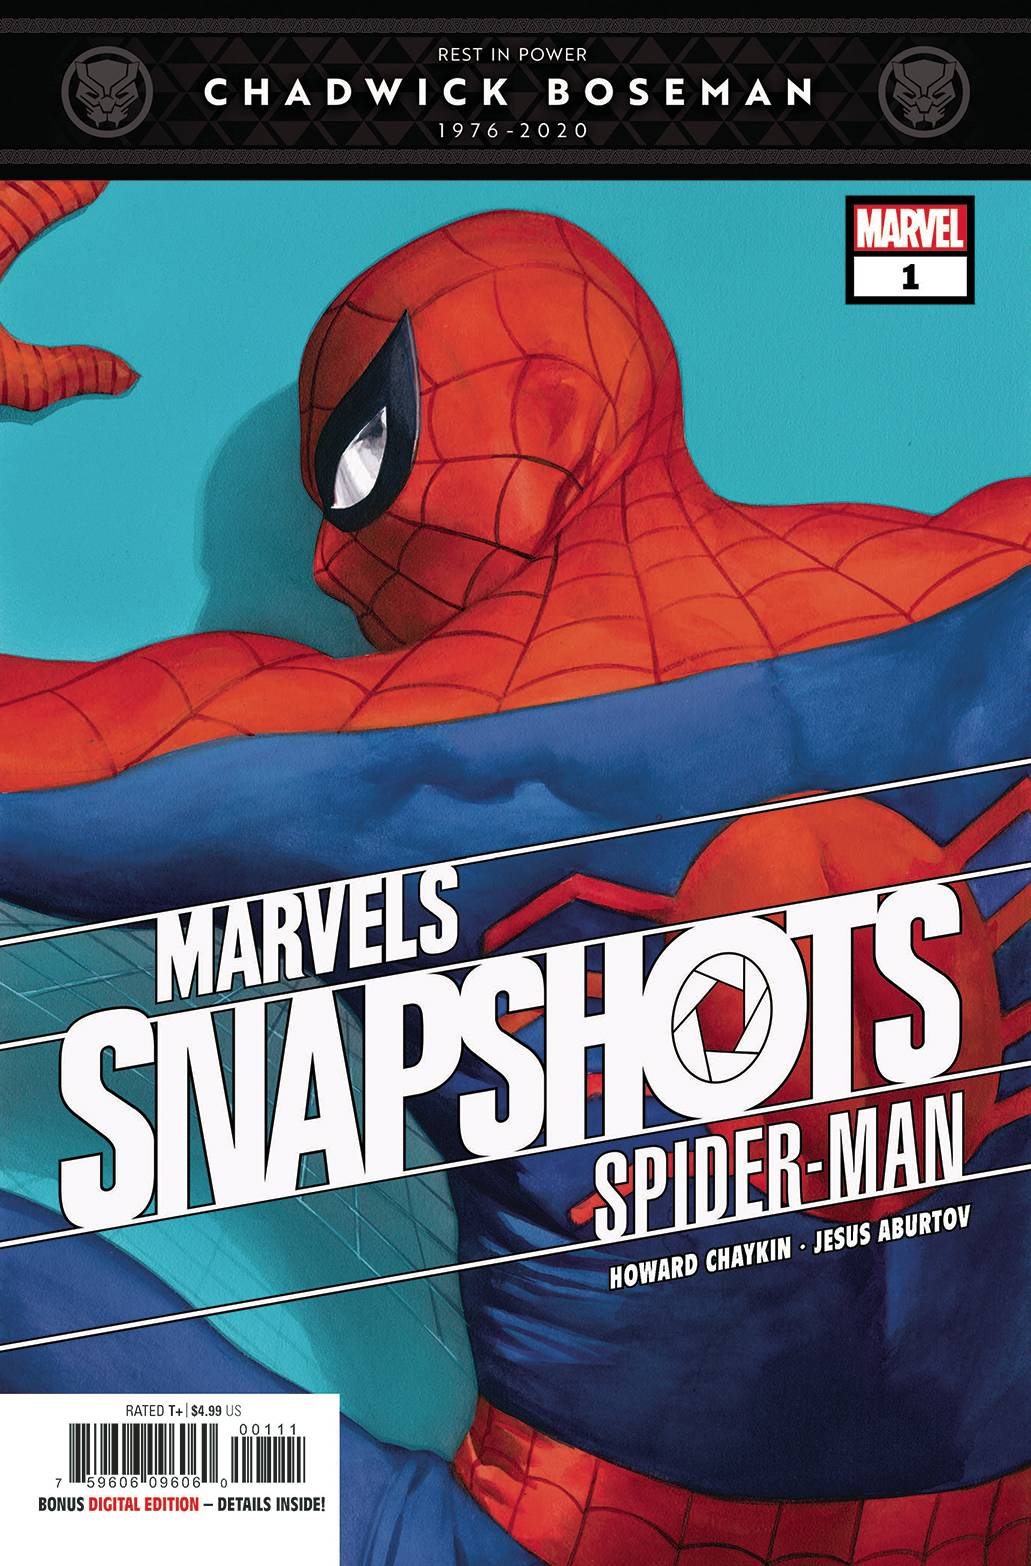 Marvels Snapshots Spider-Man #1(one shot)